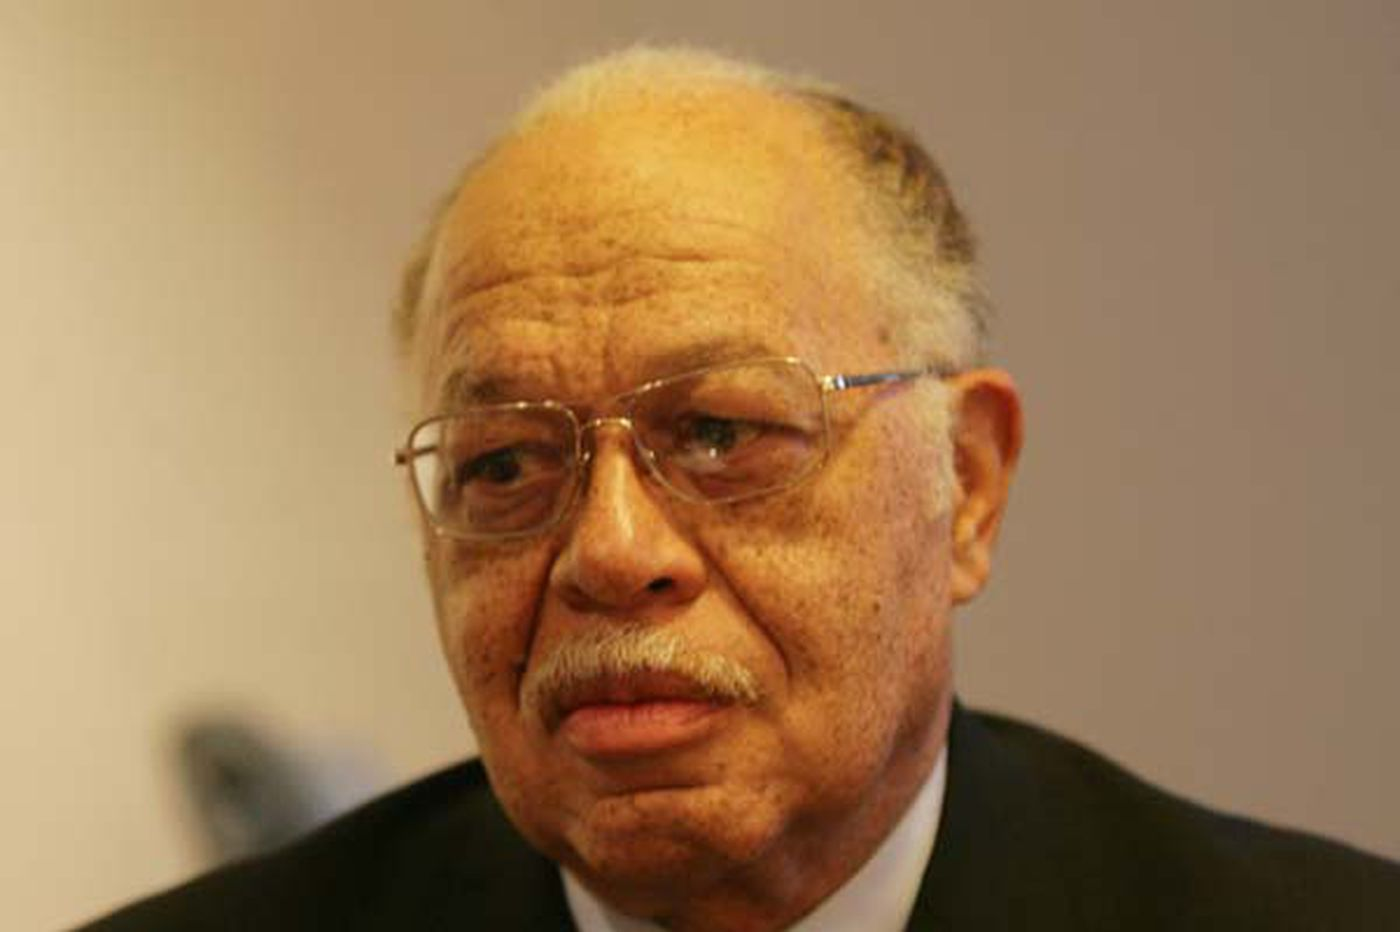 Judge sentences Gosnell to 30 years for 'pill mill' crimes